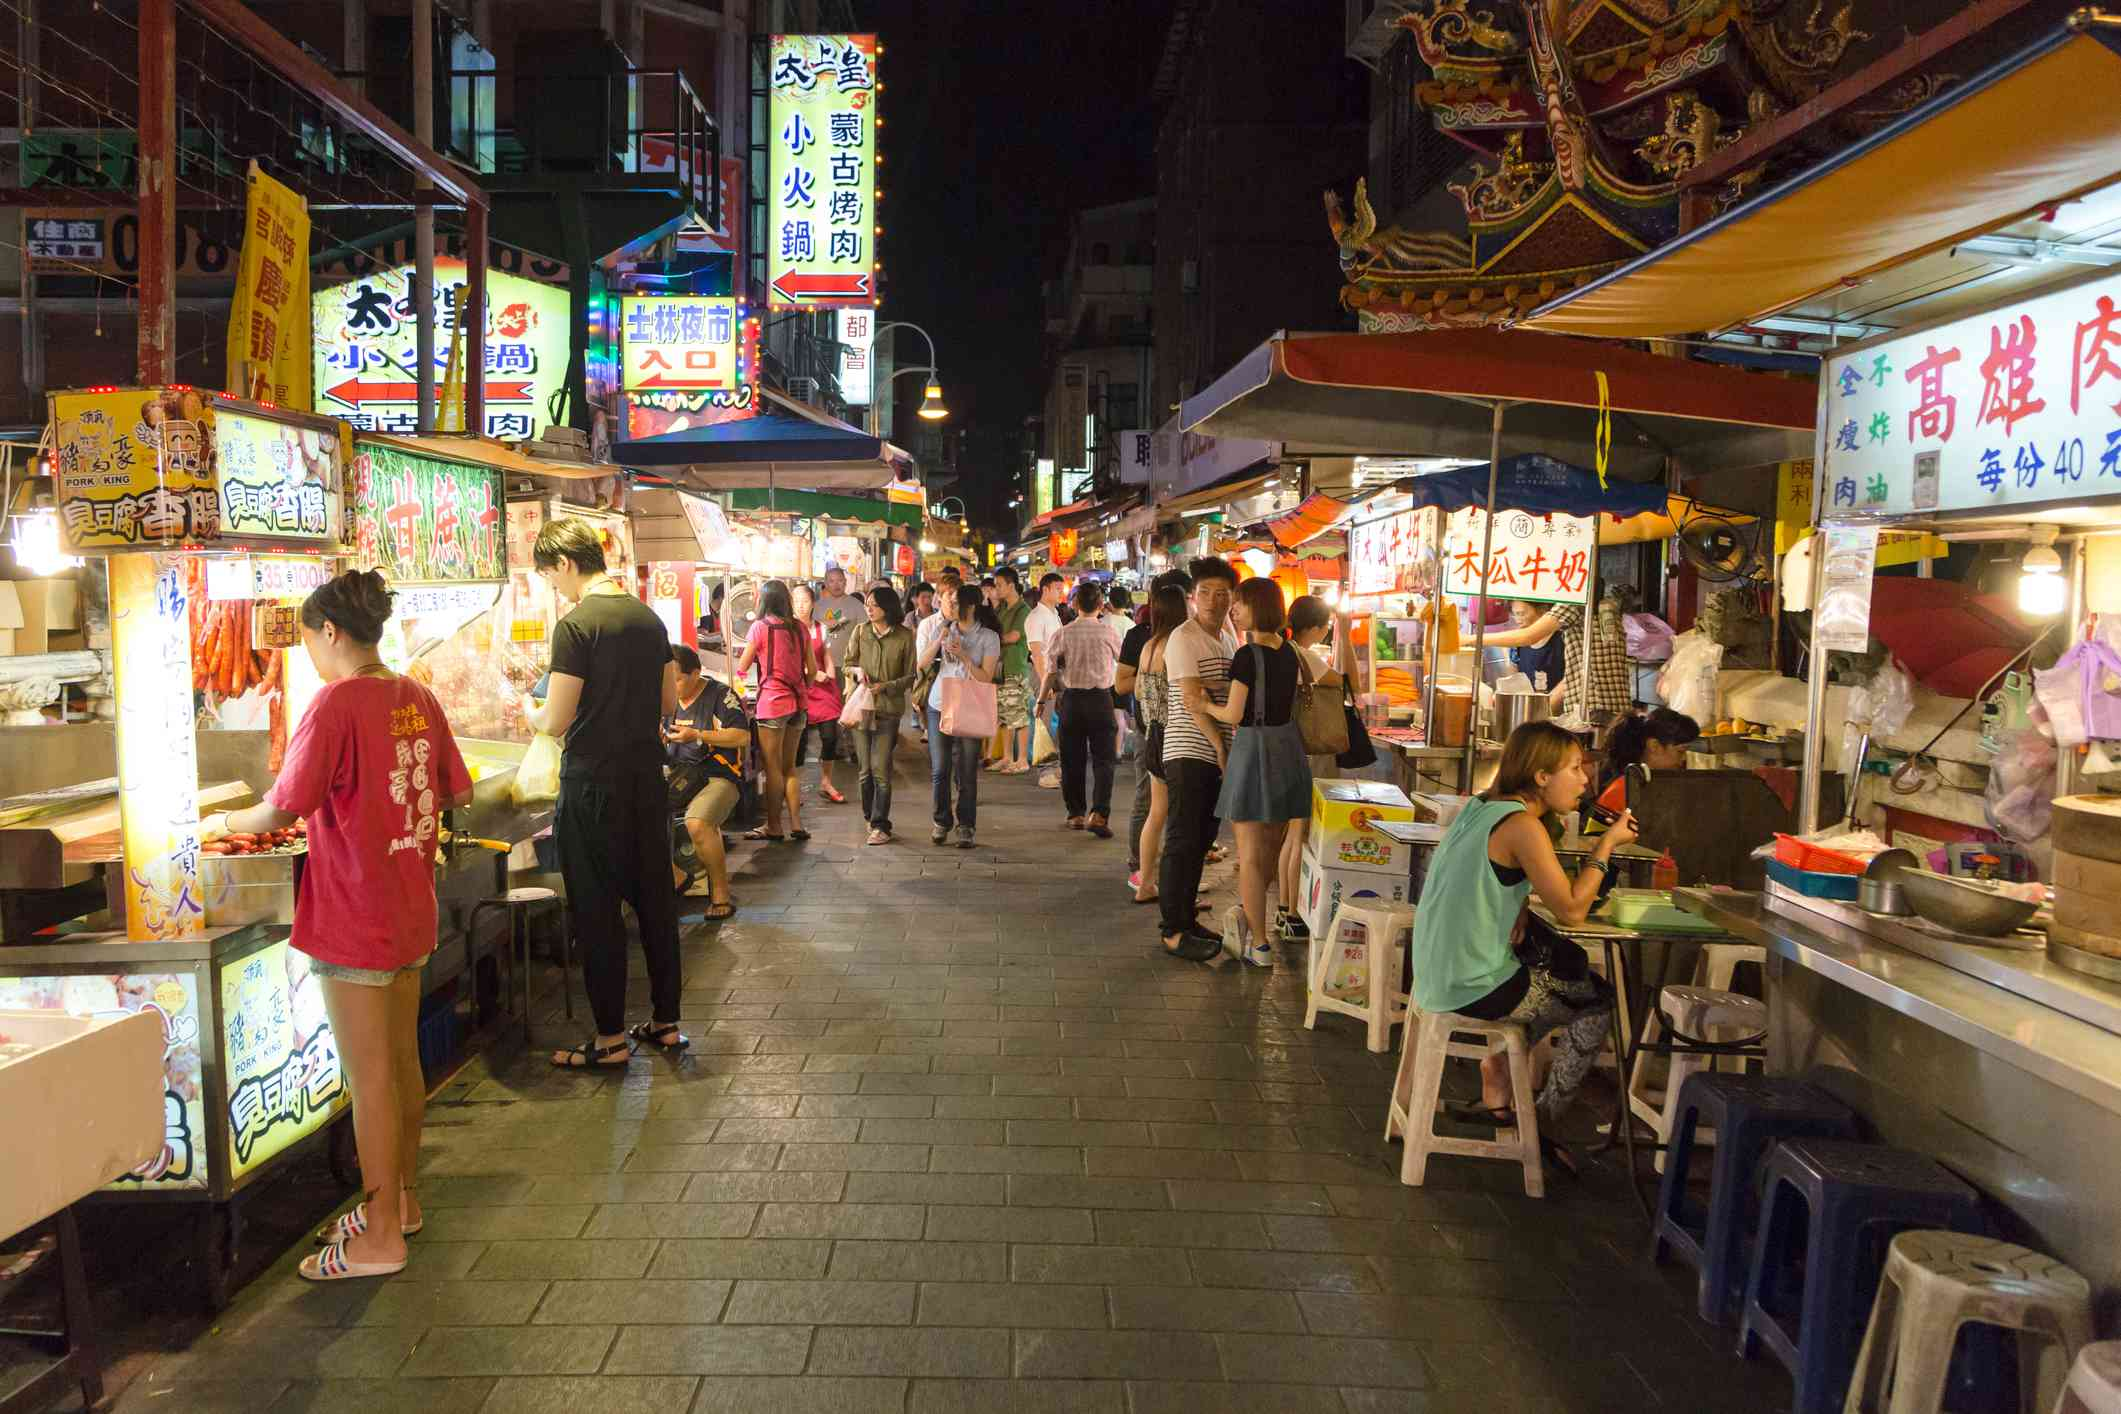 People eat street food for dinner in the famous Shilin night market in Taipei, Taiwan capital city